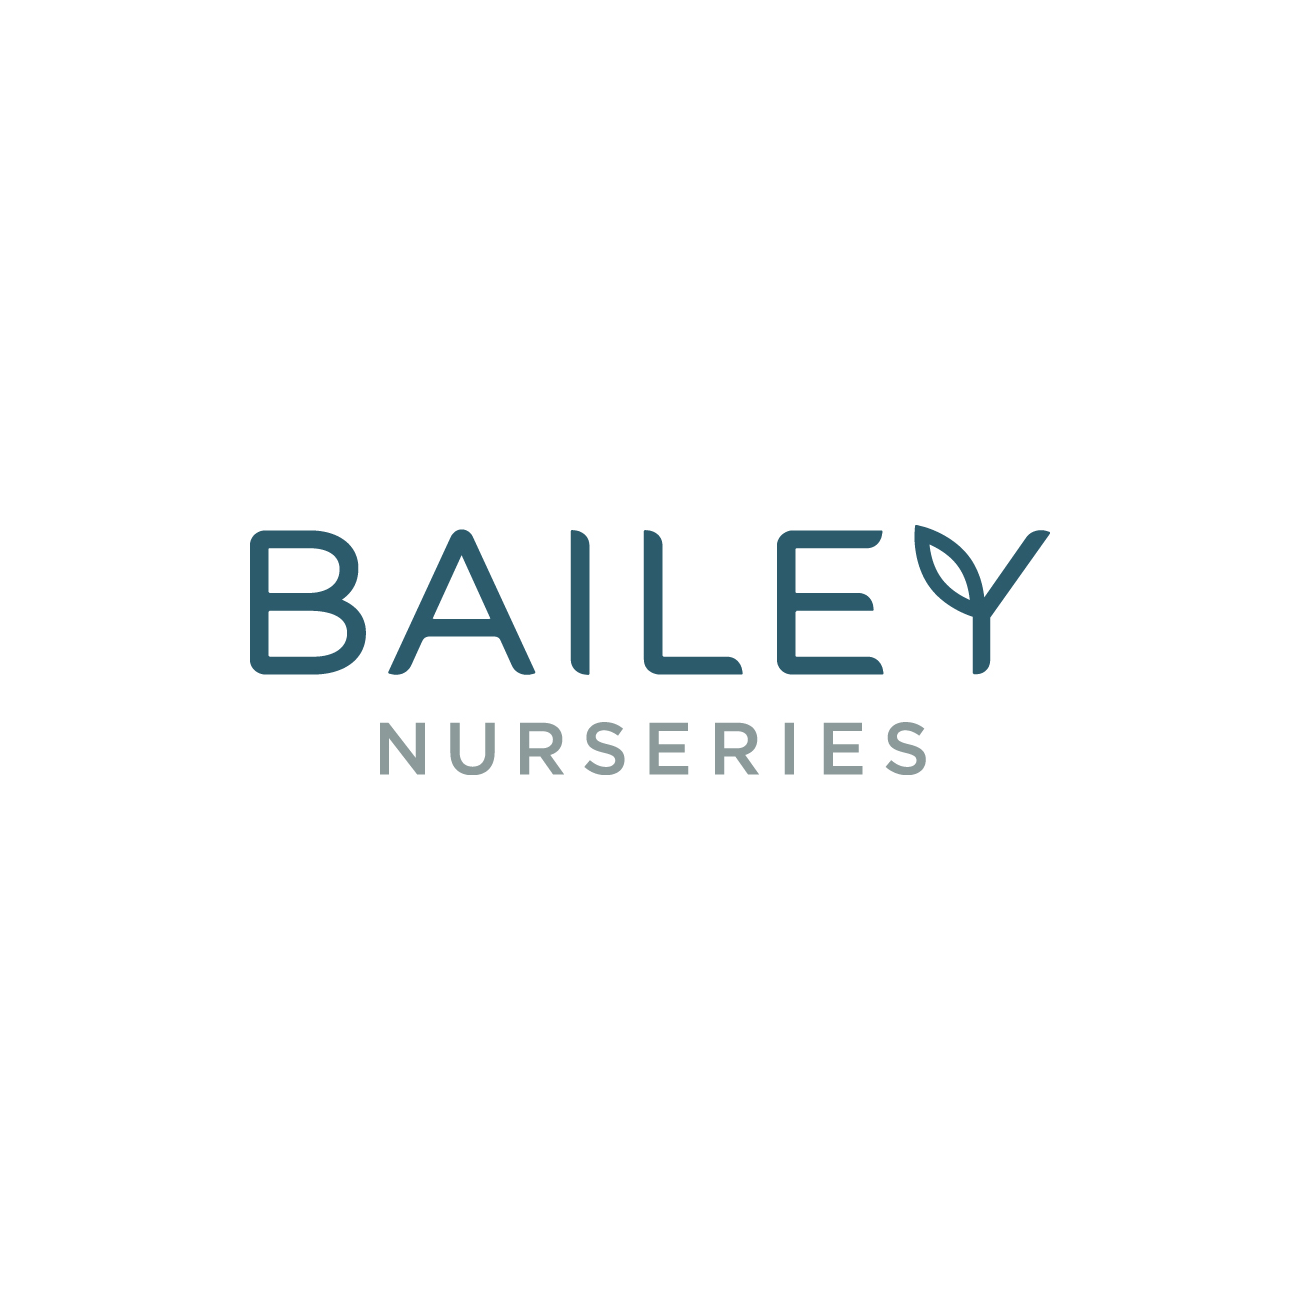 Bailley_nurseries_Logo_4C.png